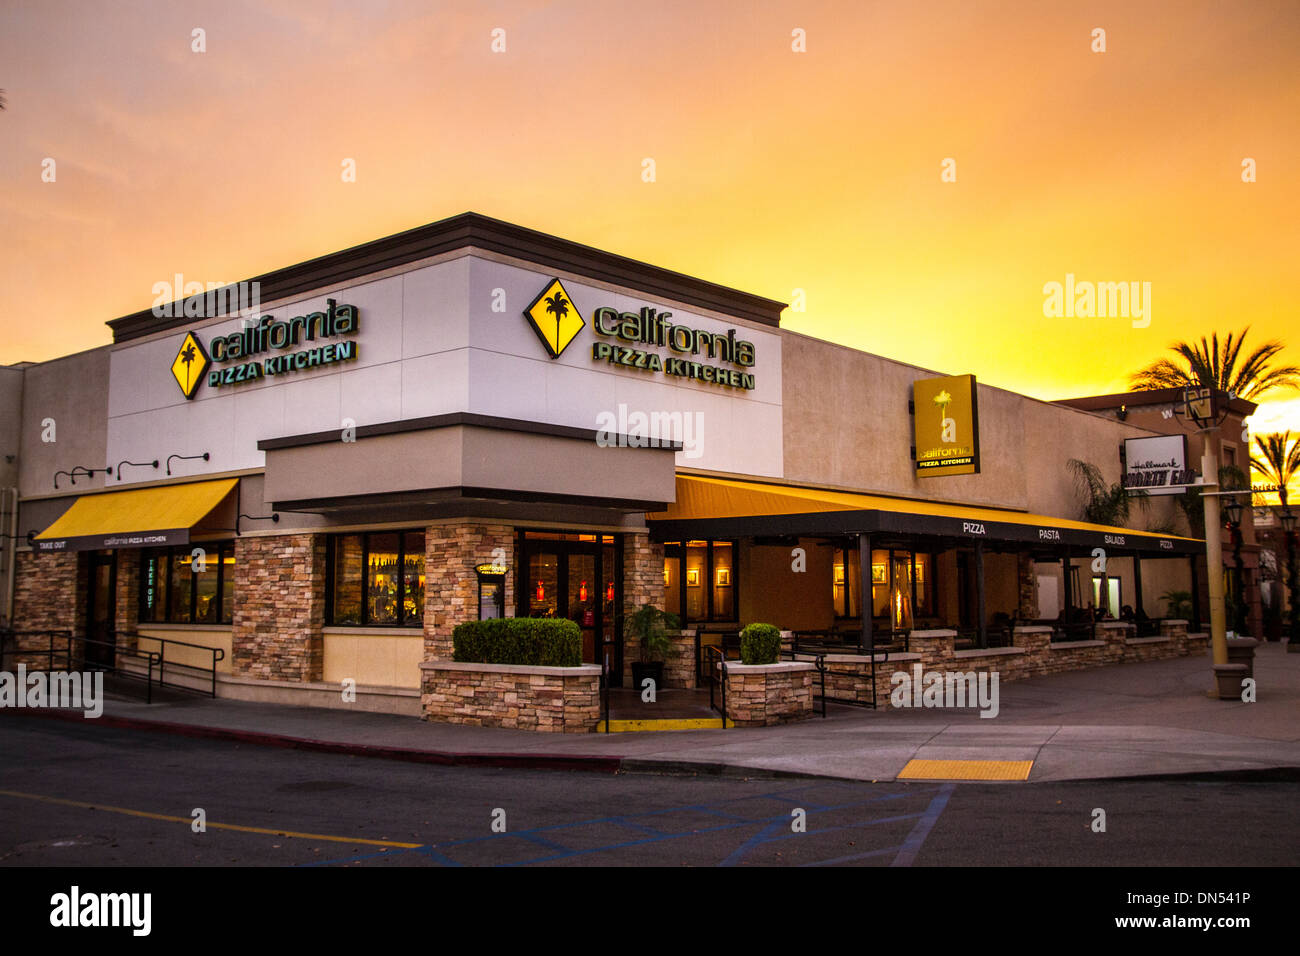 California Pizza Kitchen High Resolution Stock Photography And Images Alamy